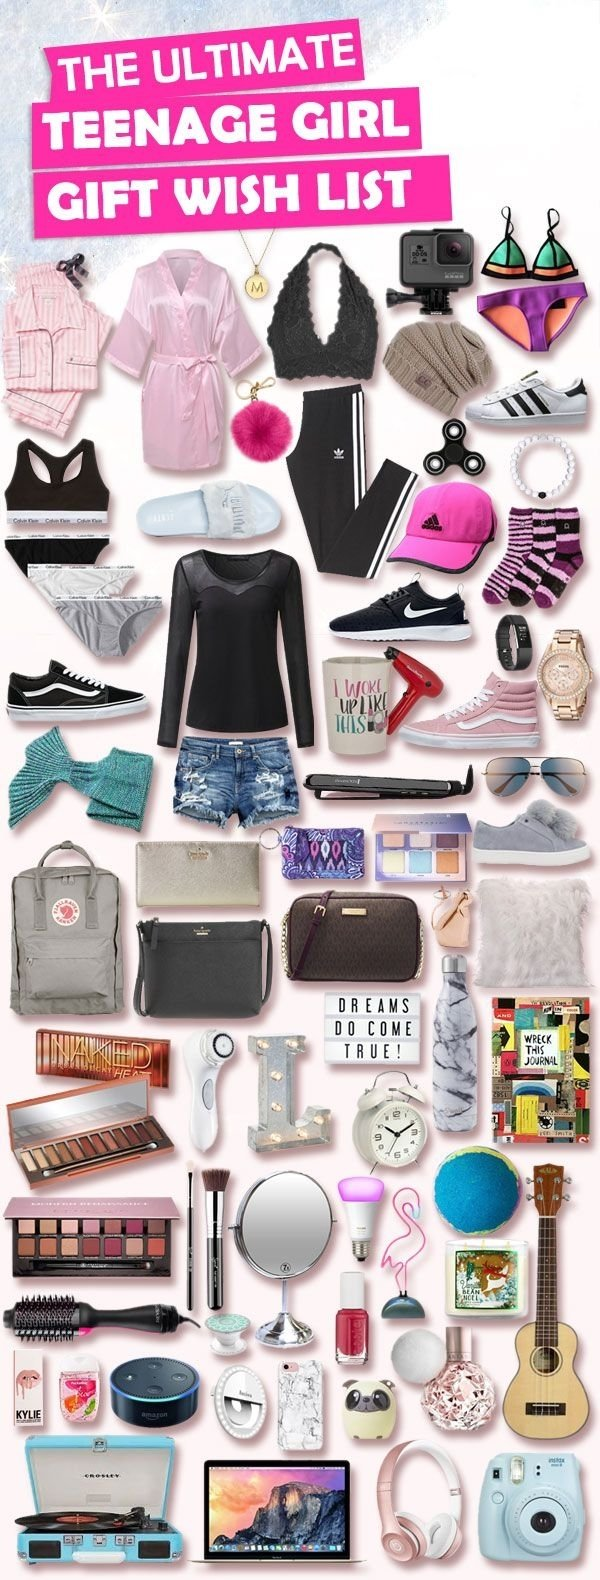 10 Perfect Christmas List Ideas For Teenage Girls christmas gifts for teenage girls list christmas gifts parents 2020